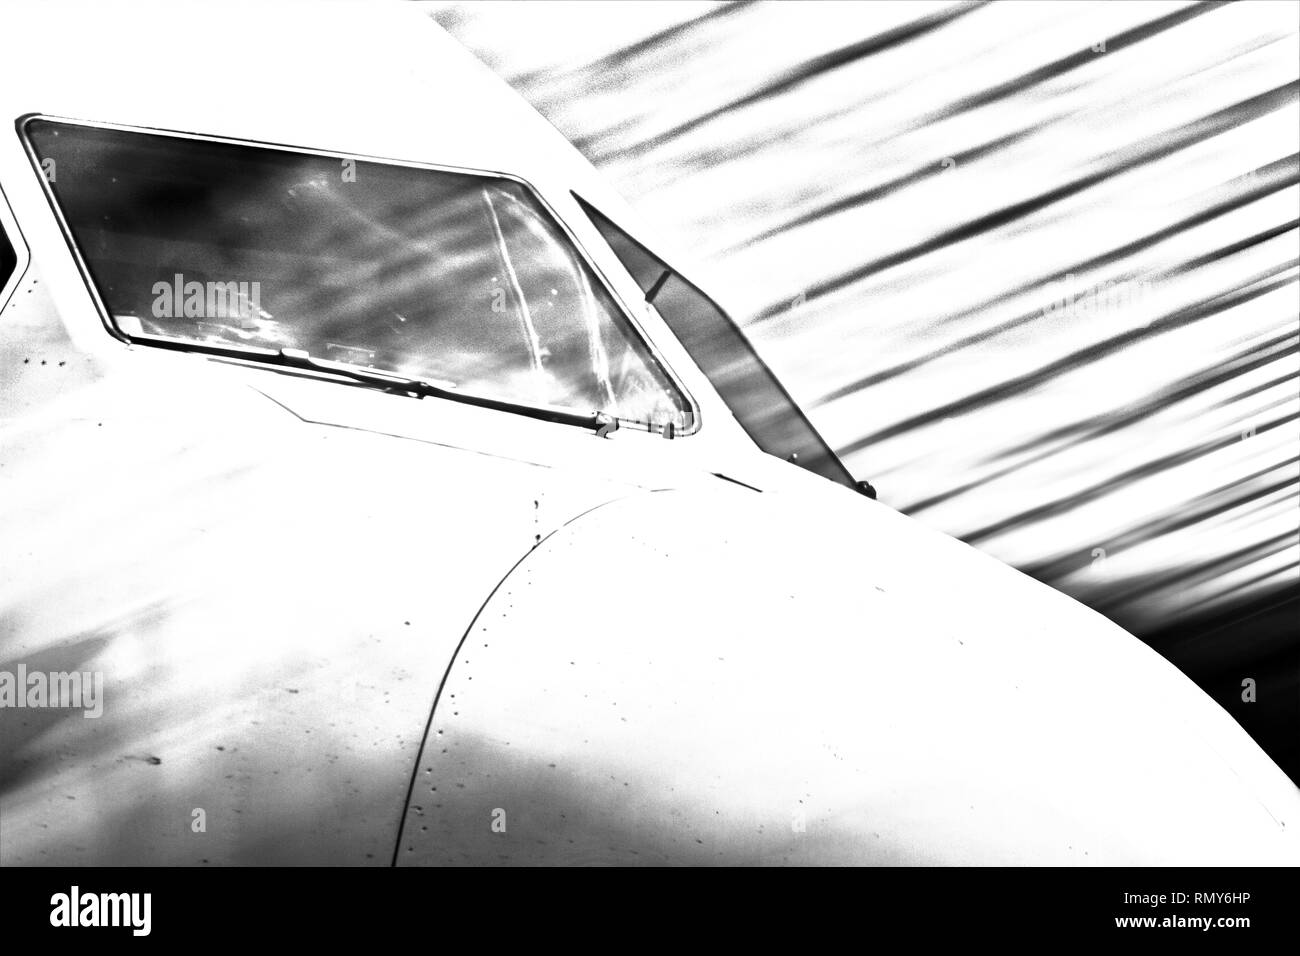 Black and white image of airplane cockpit seen from exterior with motion blur strokes pattern in the background. - Stock Image